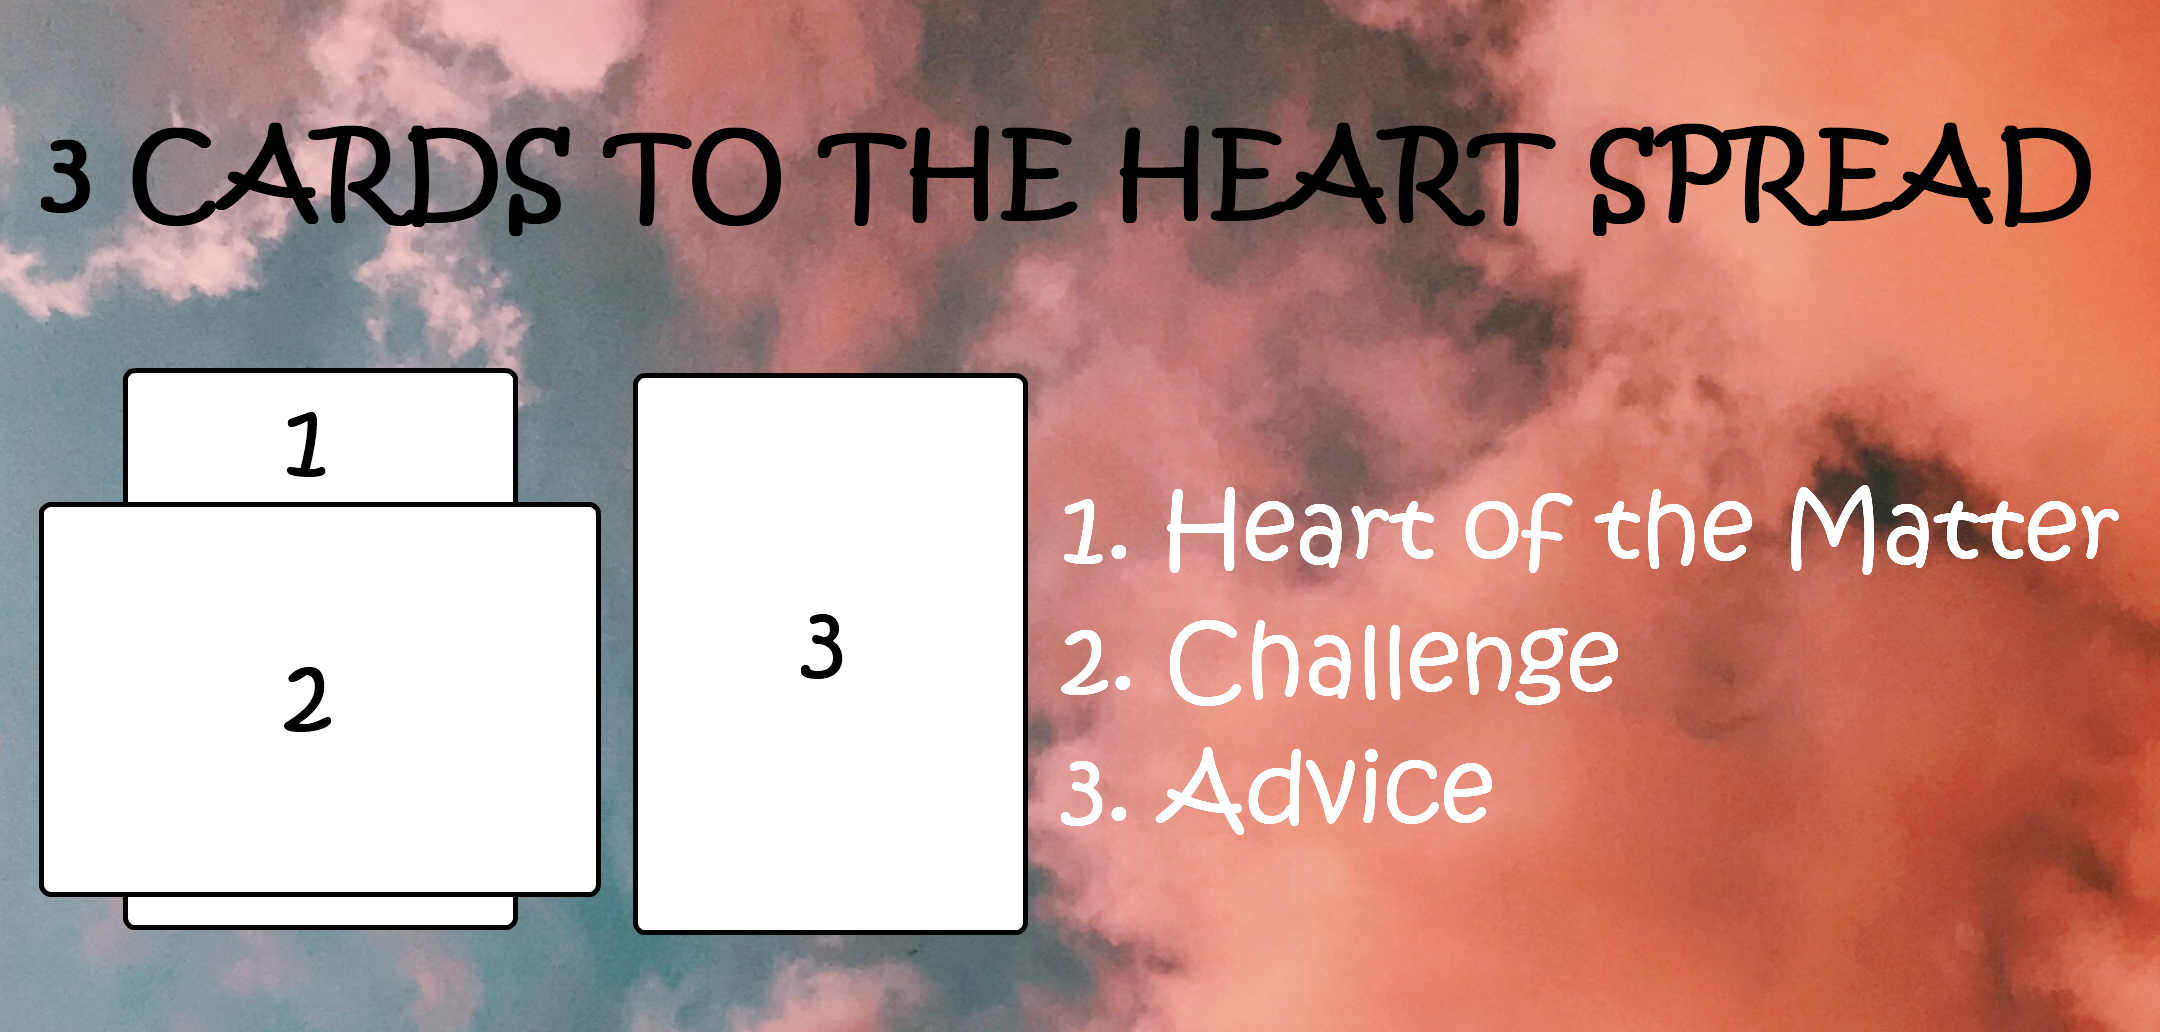 3 Cards To The Heart Spread  1. Heart of the Matter 2. Challenge 3. Advice